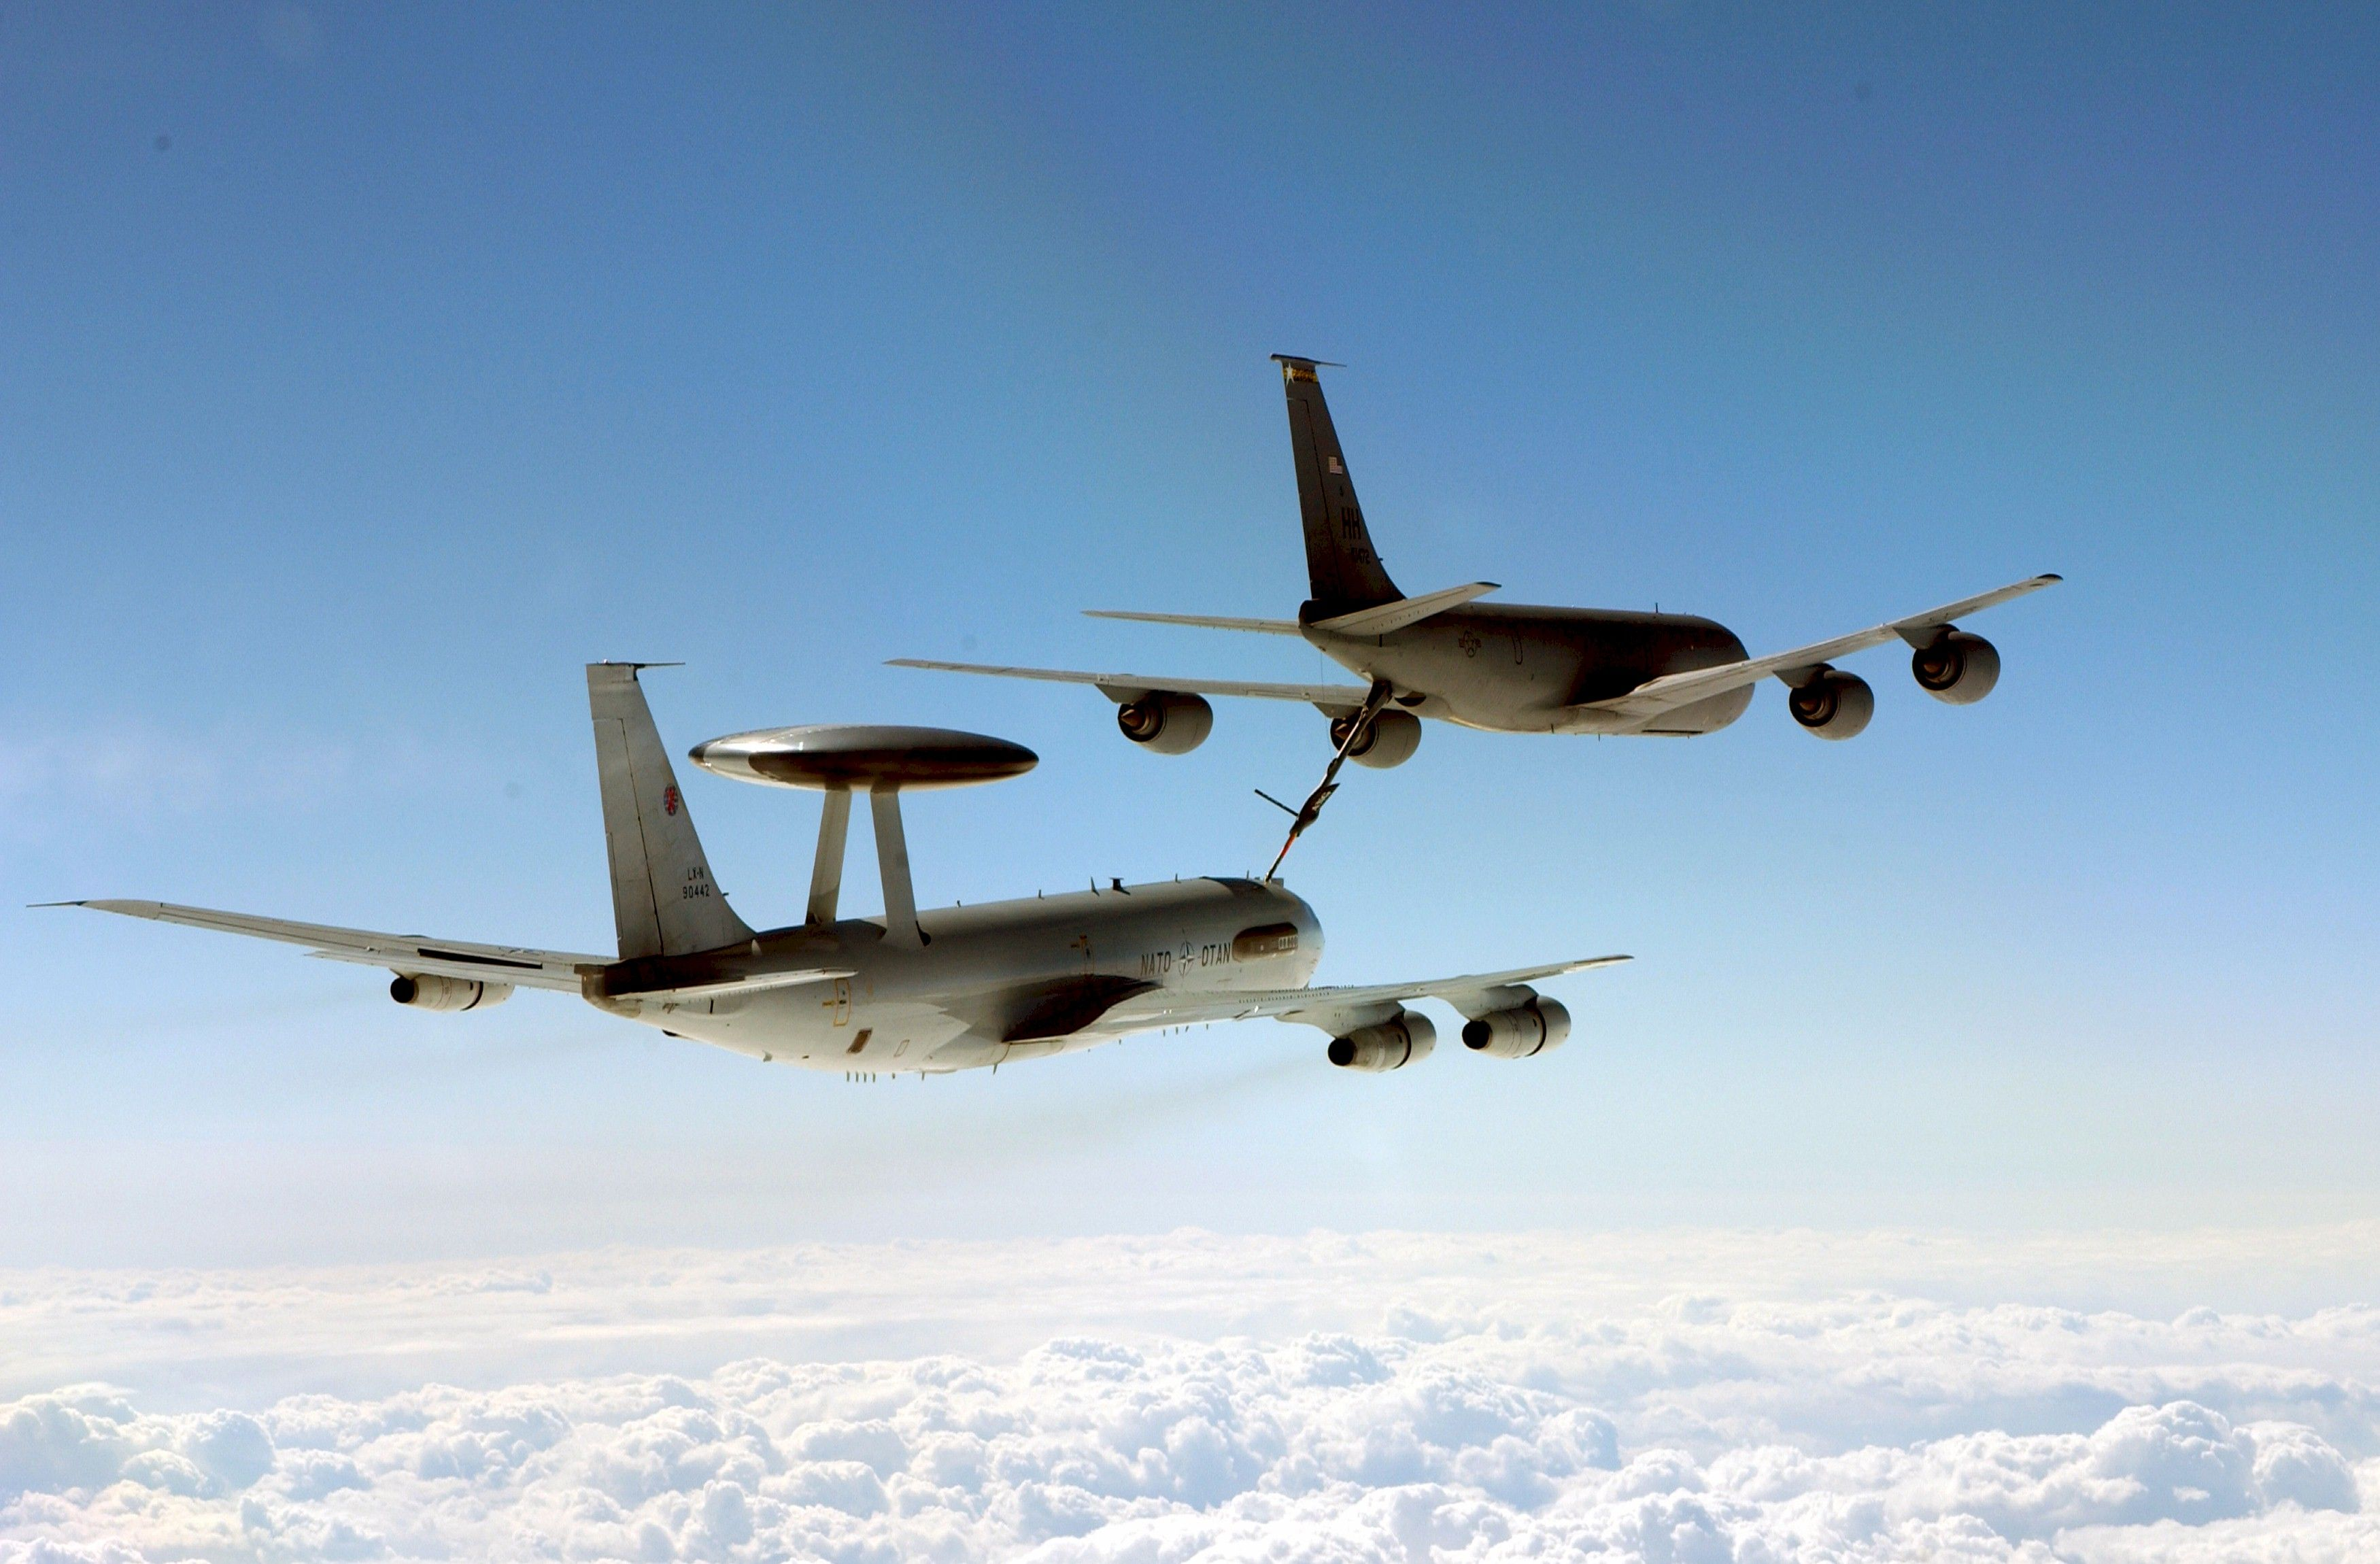 Endeavour Aco Allied Command Operations Awacs To Support Nato Maritime Kc 130 Old Planes Military